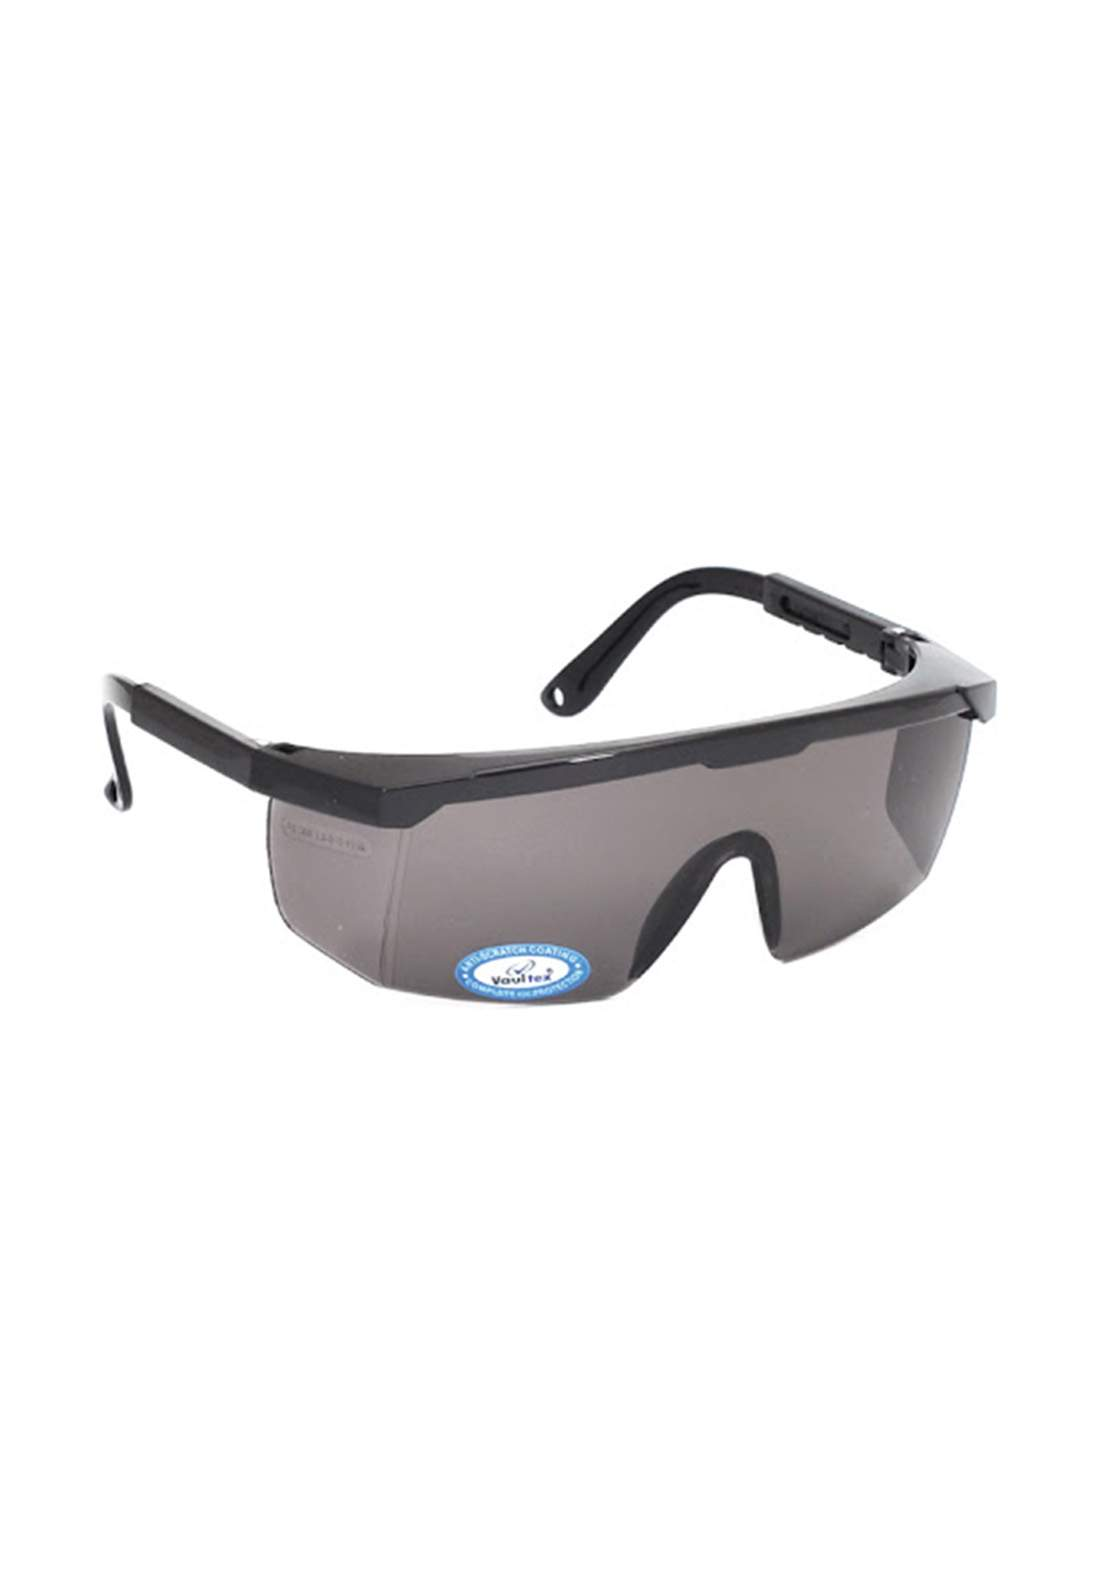 Subul AlHurra Safety Glasses And Eye Protection نظارات أمان